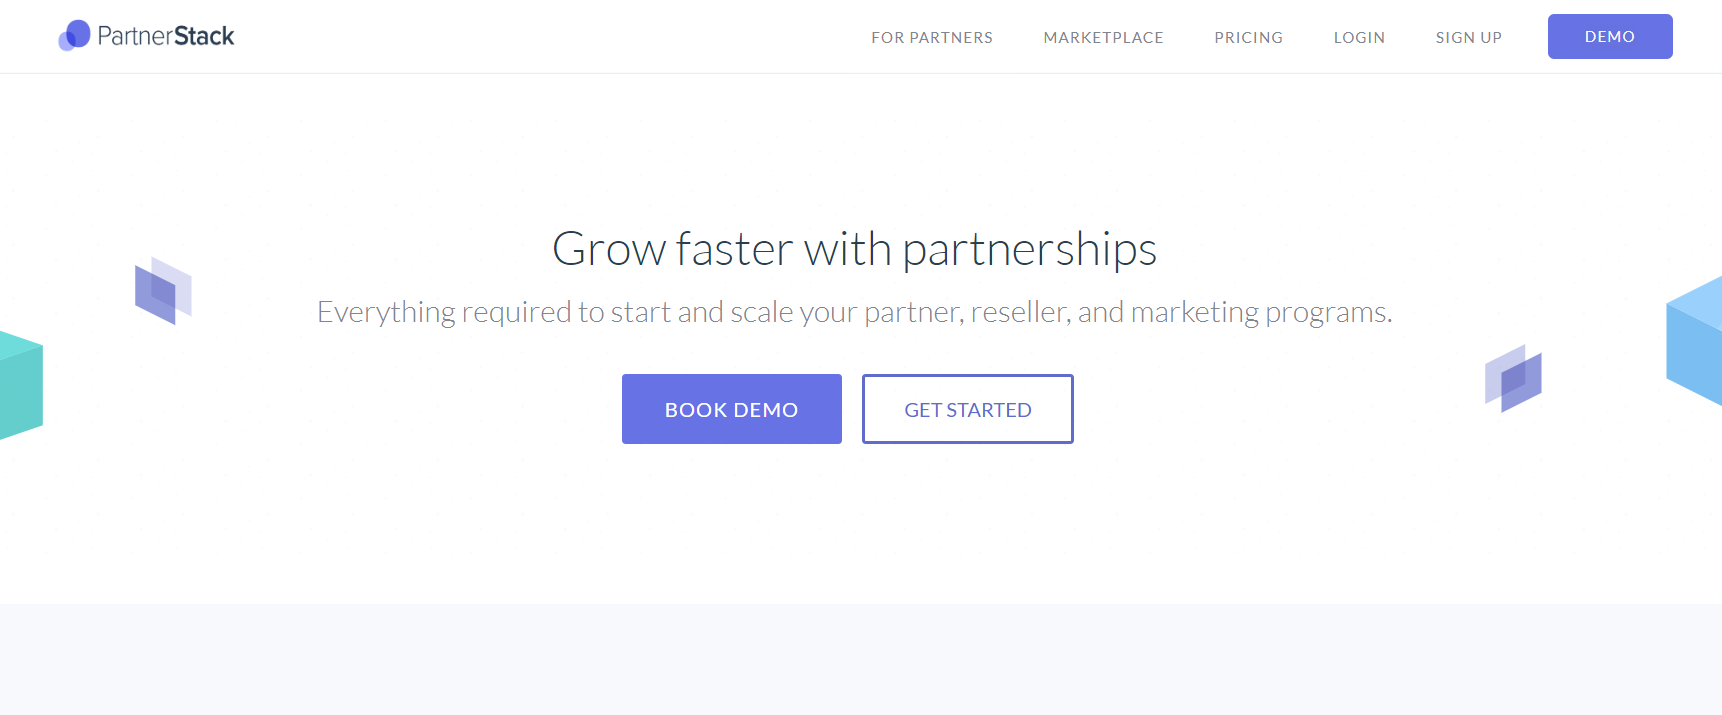 PartnerStack Overview- Build Distribution Channels That Work